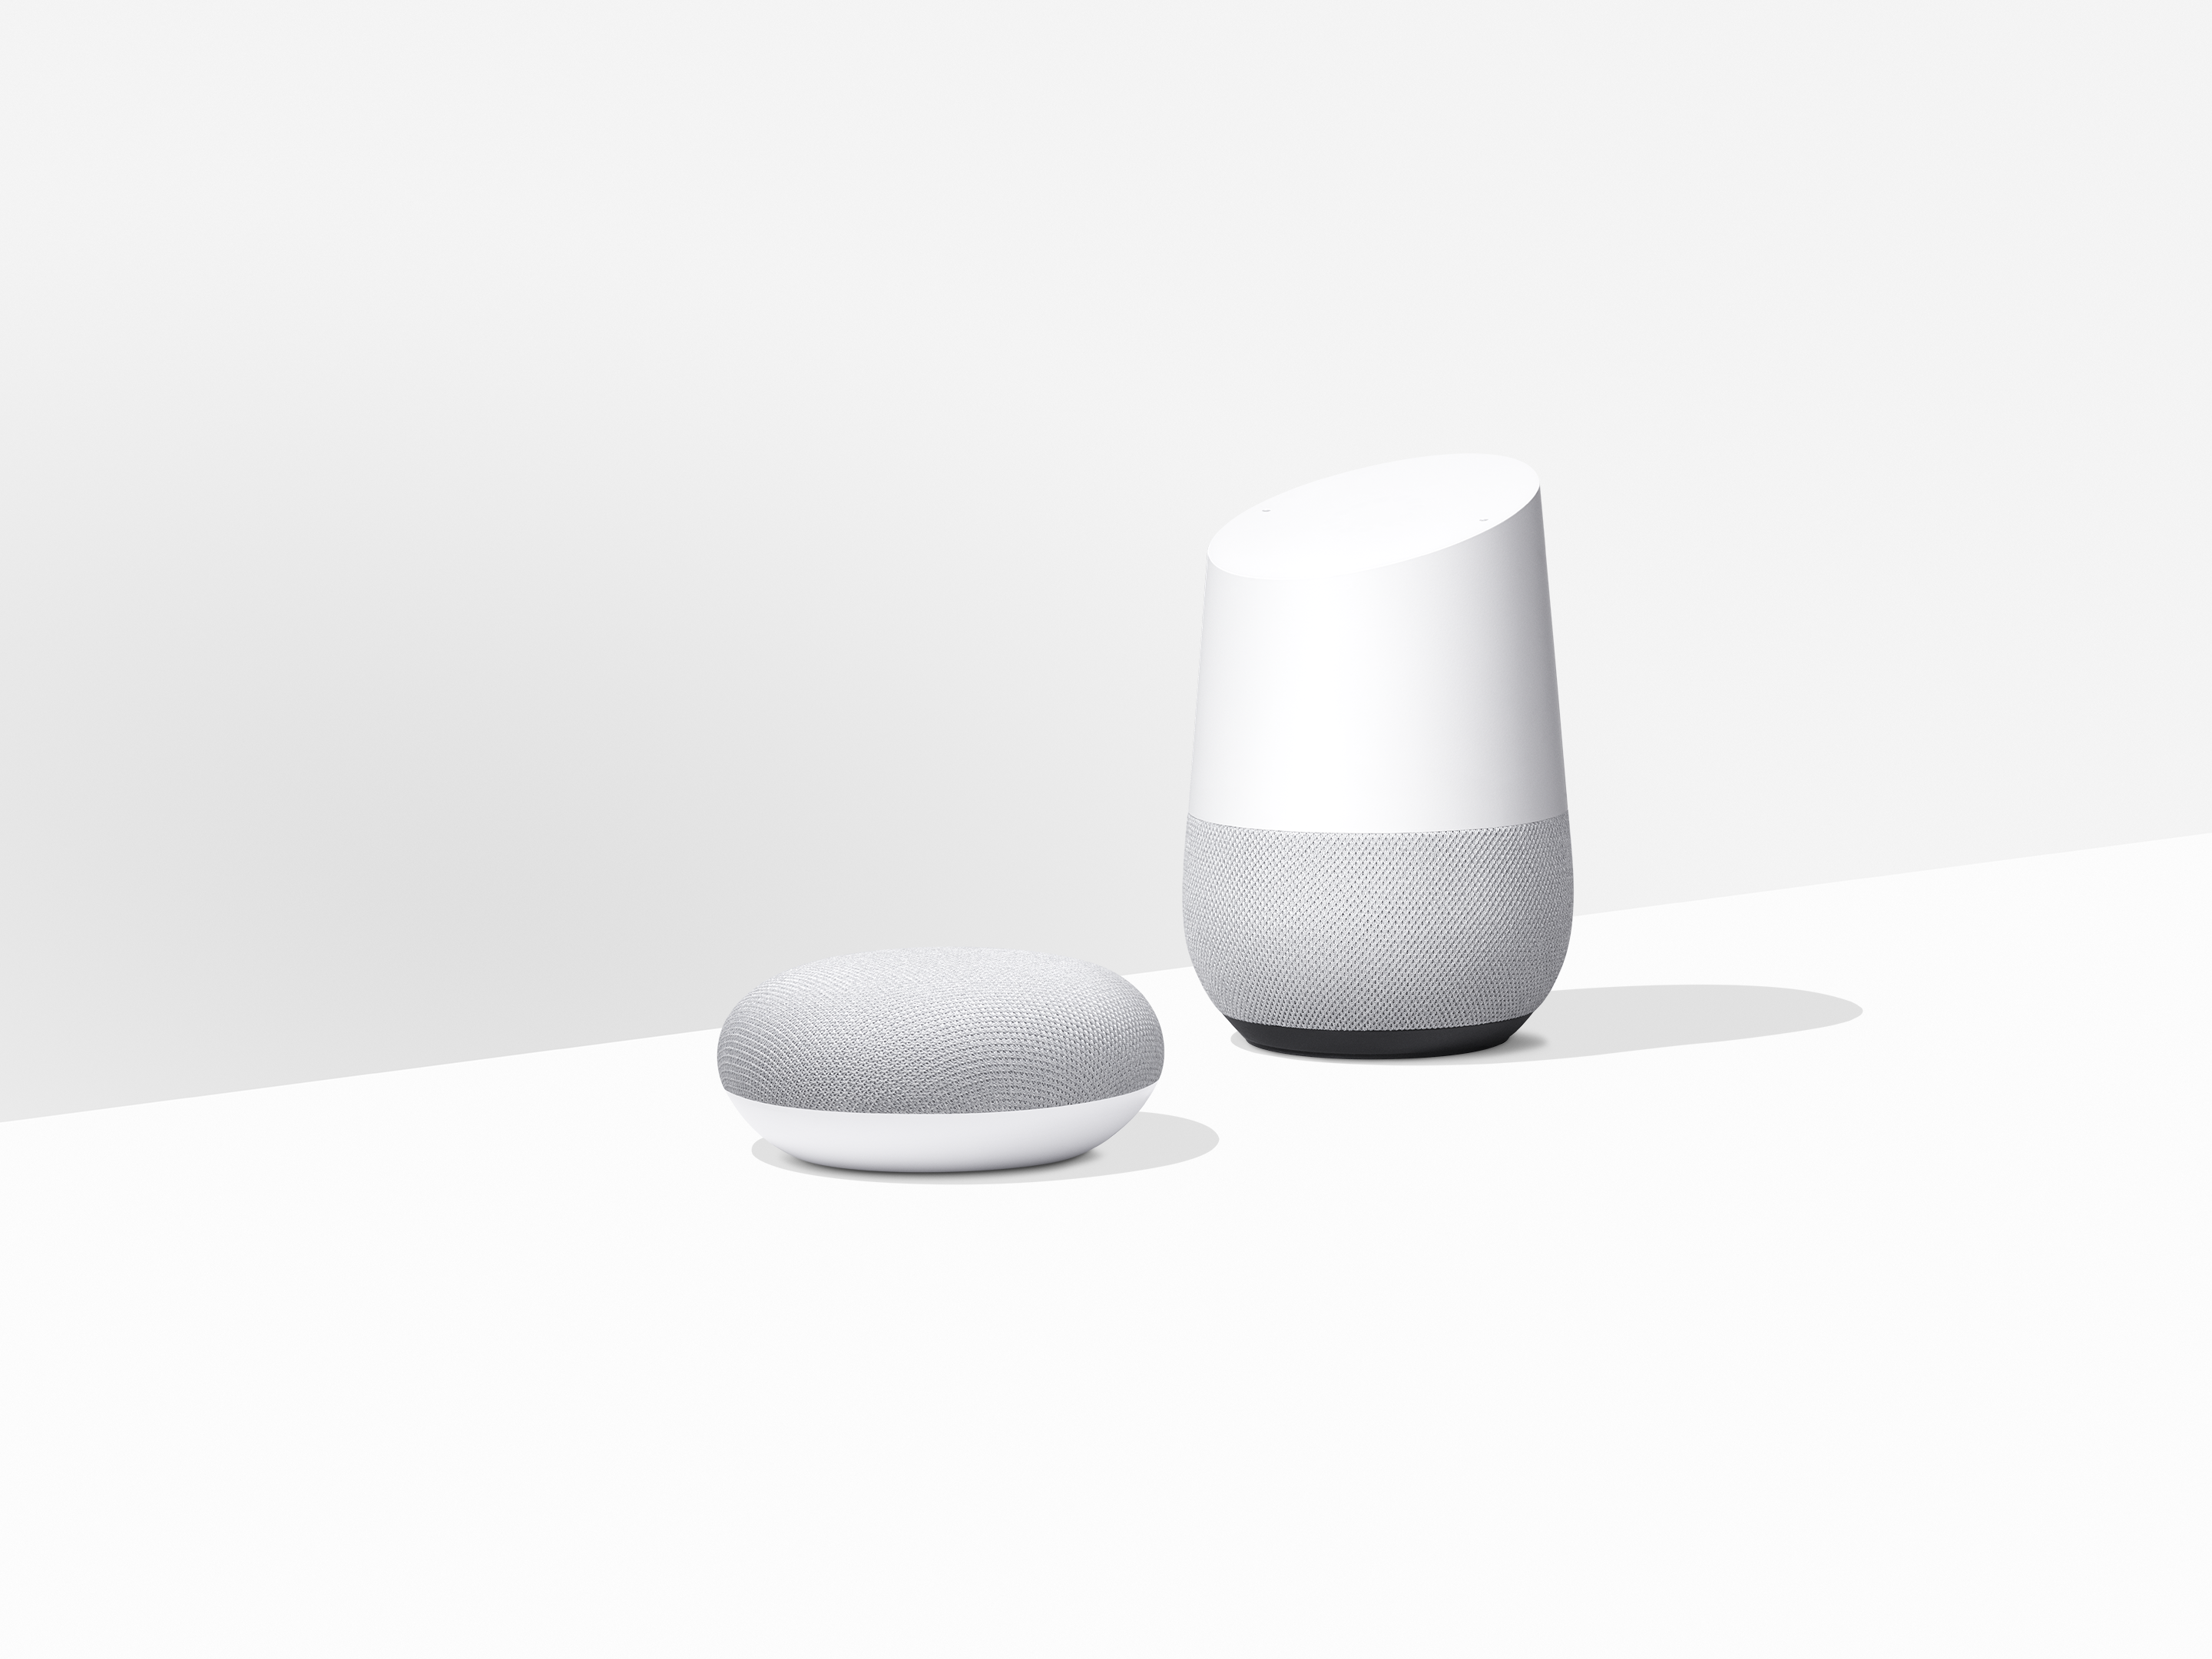 google home for the holidays